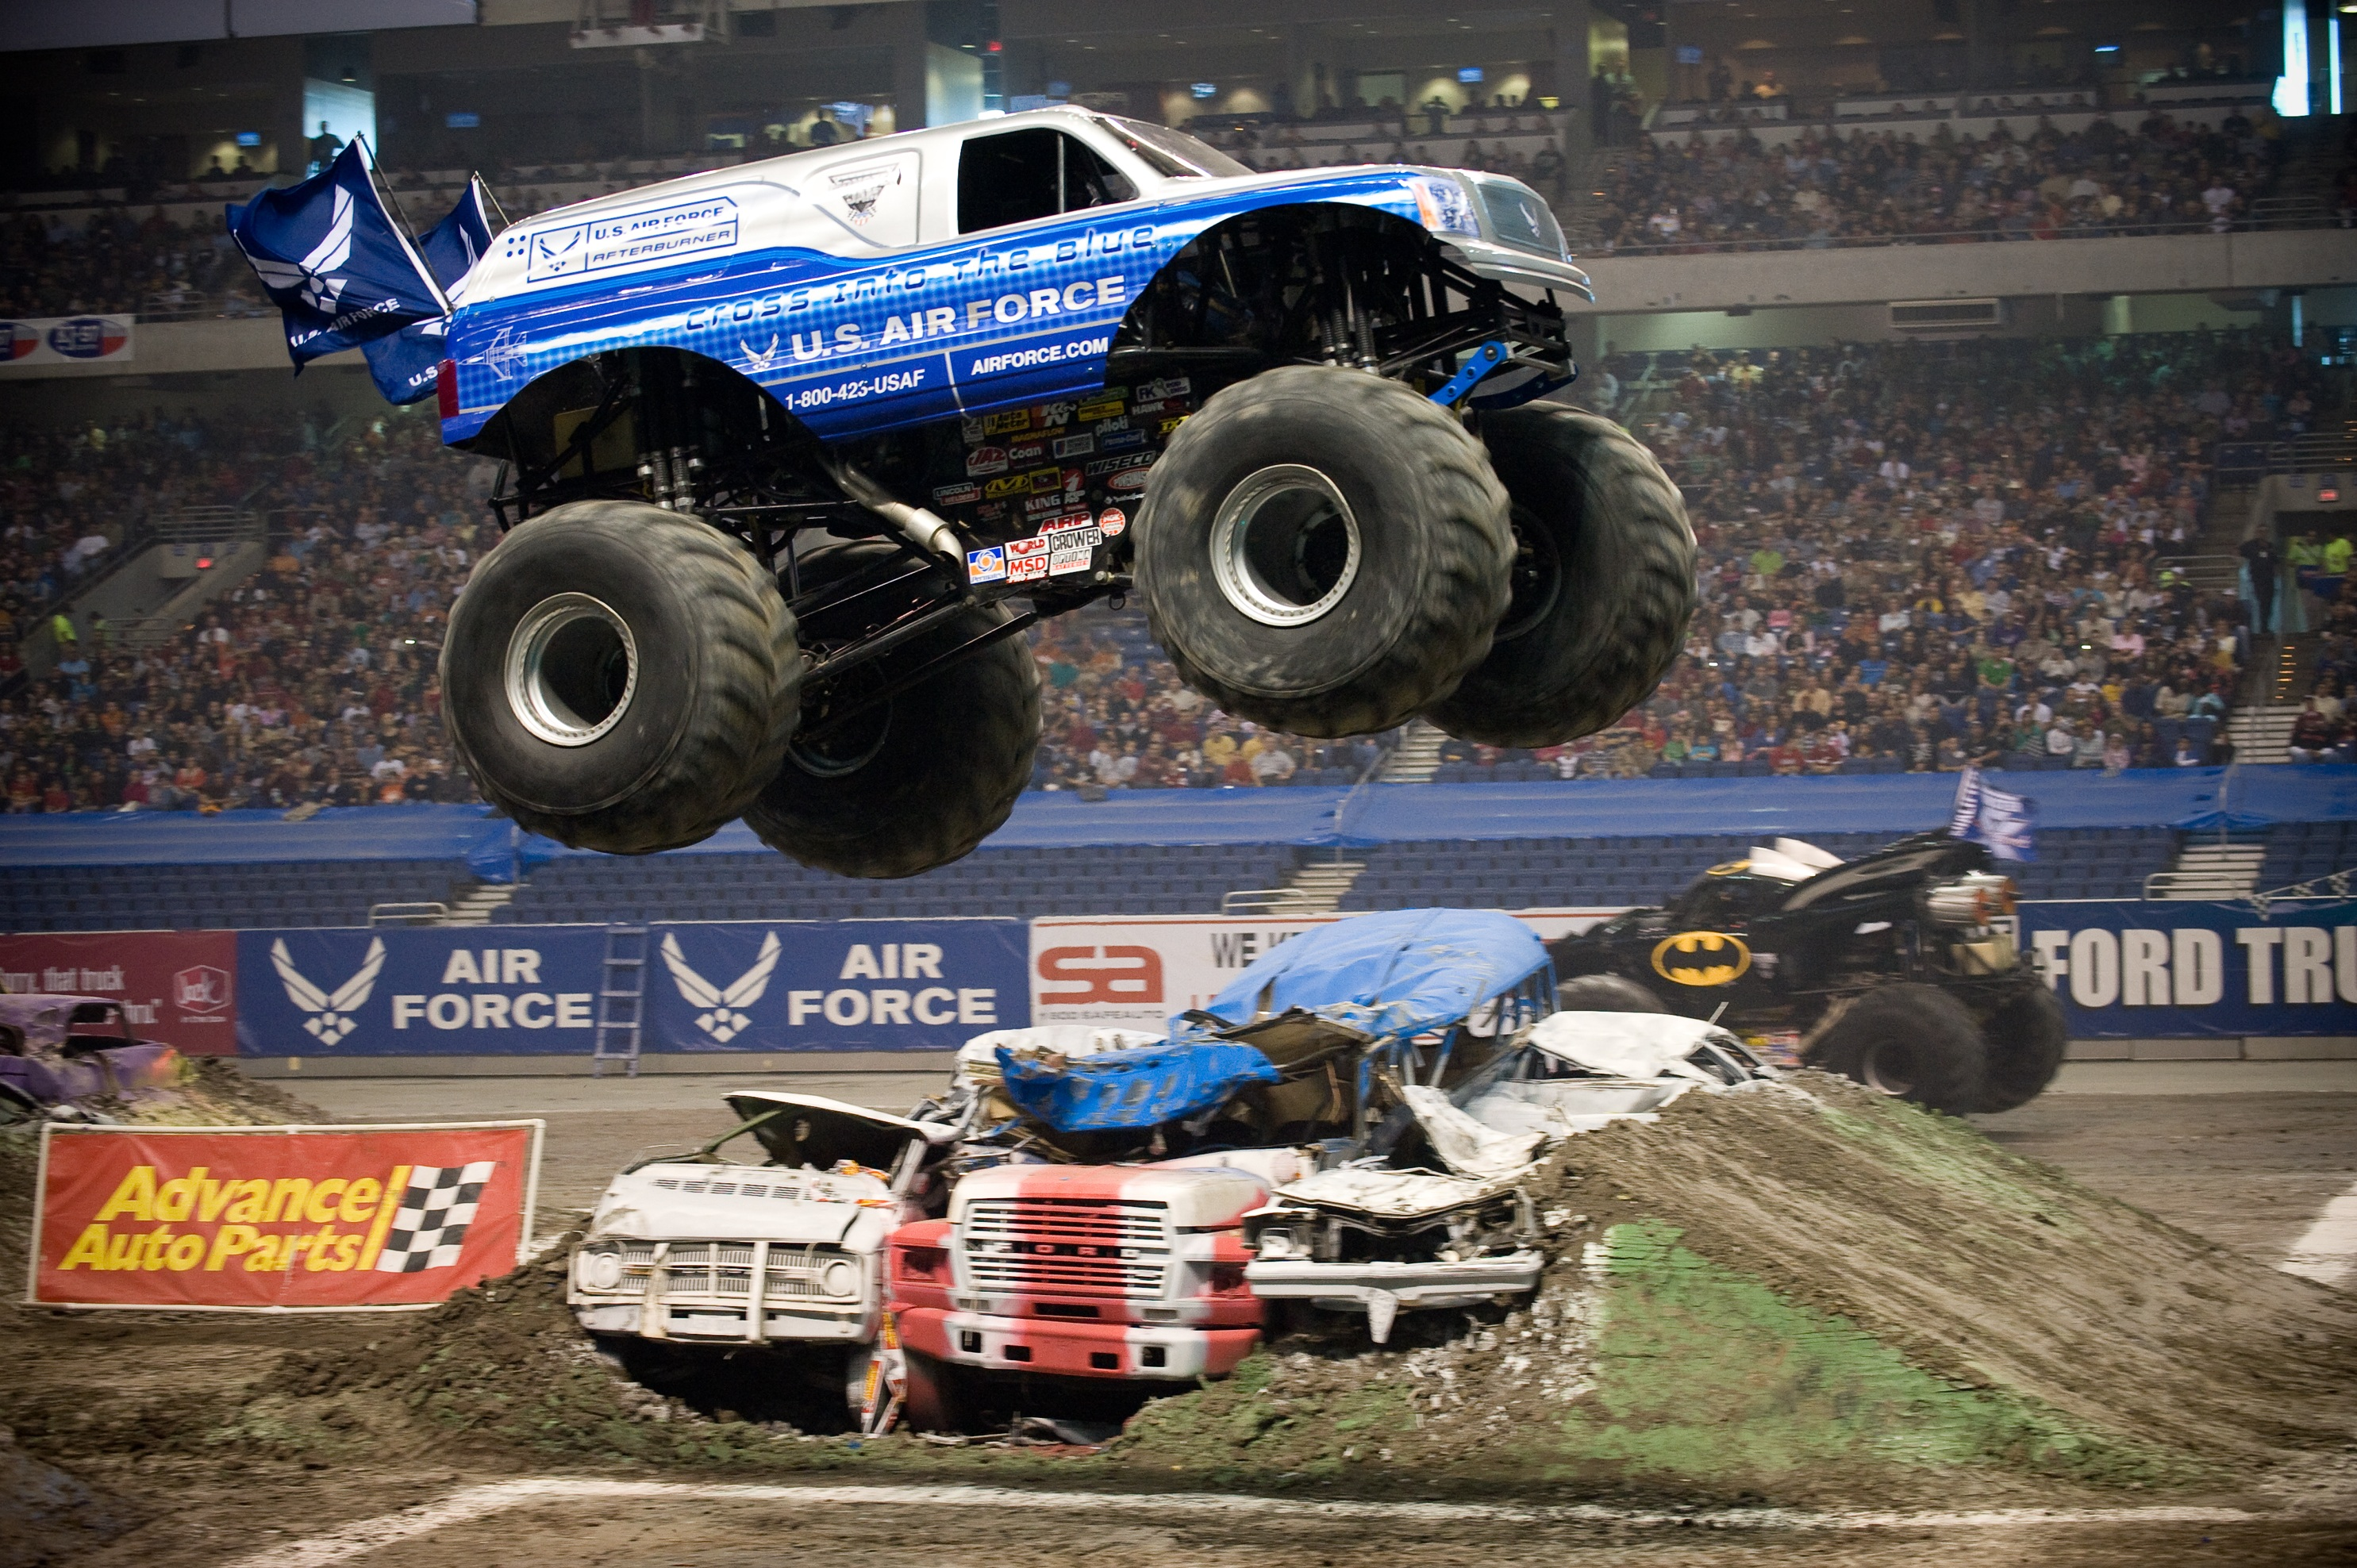 Monster Truck Jump, Activity, Championship, Giant, Monster, HQ Photo